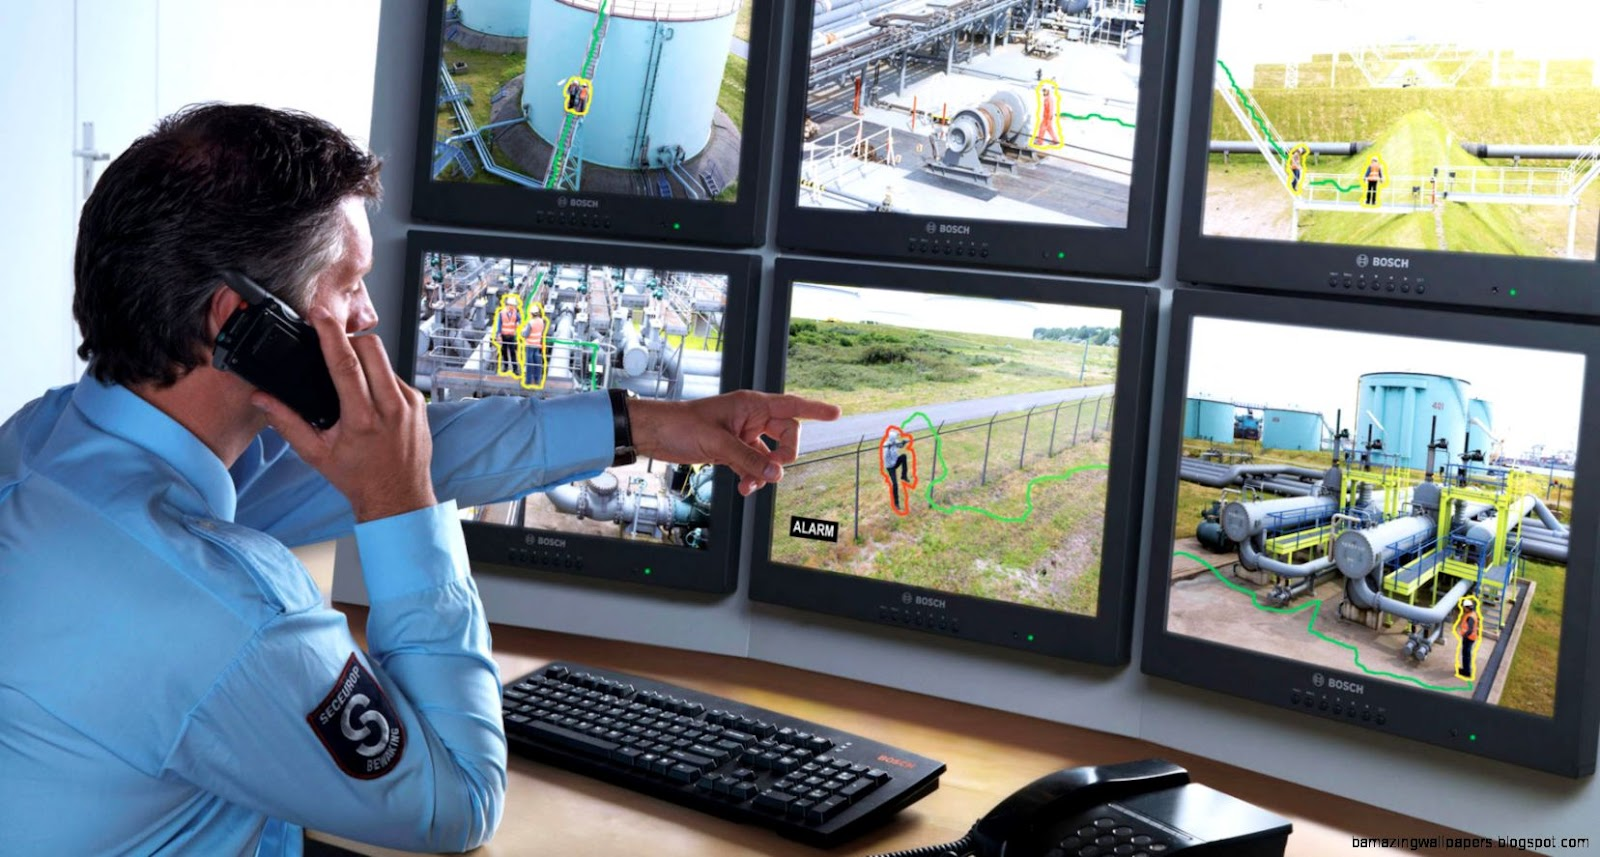 CCTV security cameras Digital video security systems   Houston